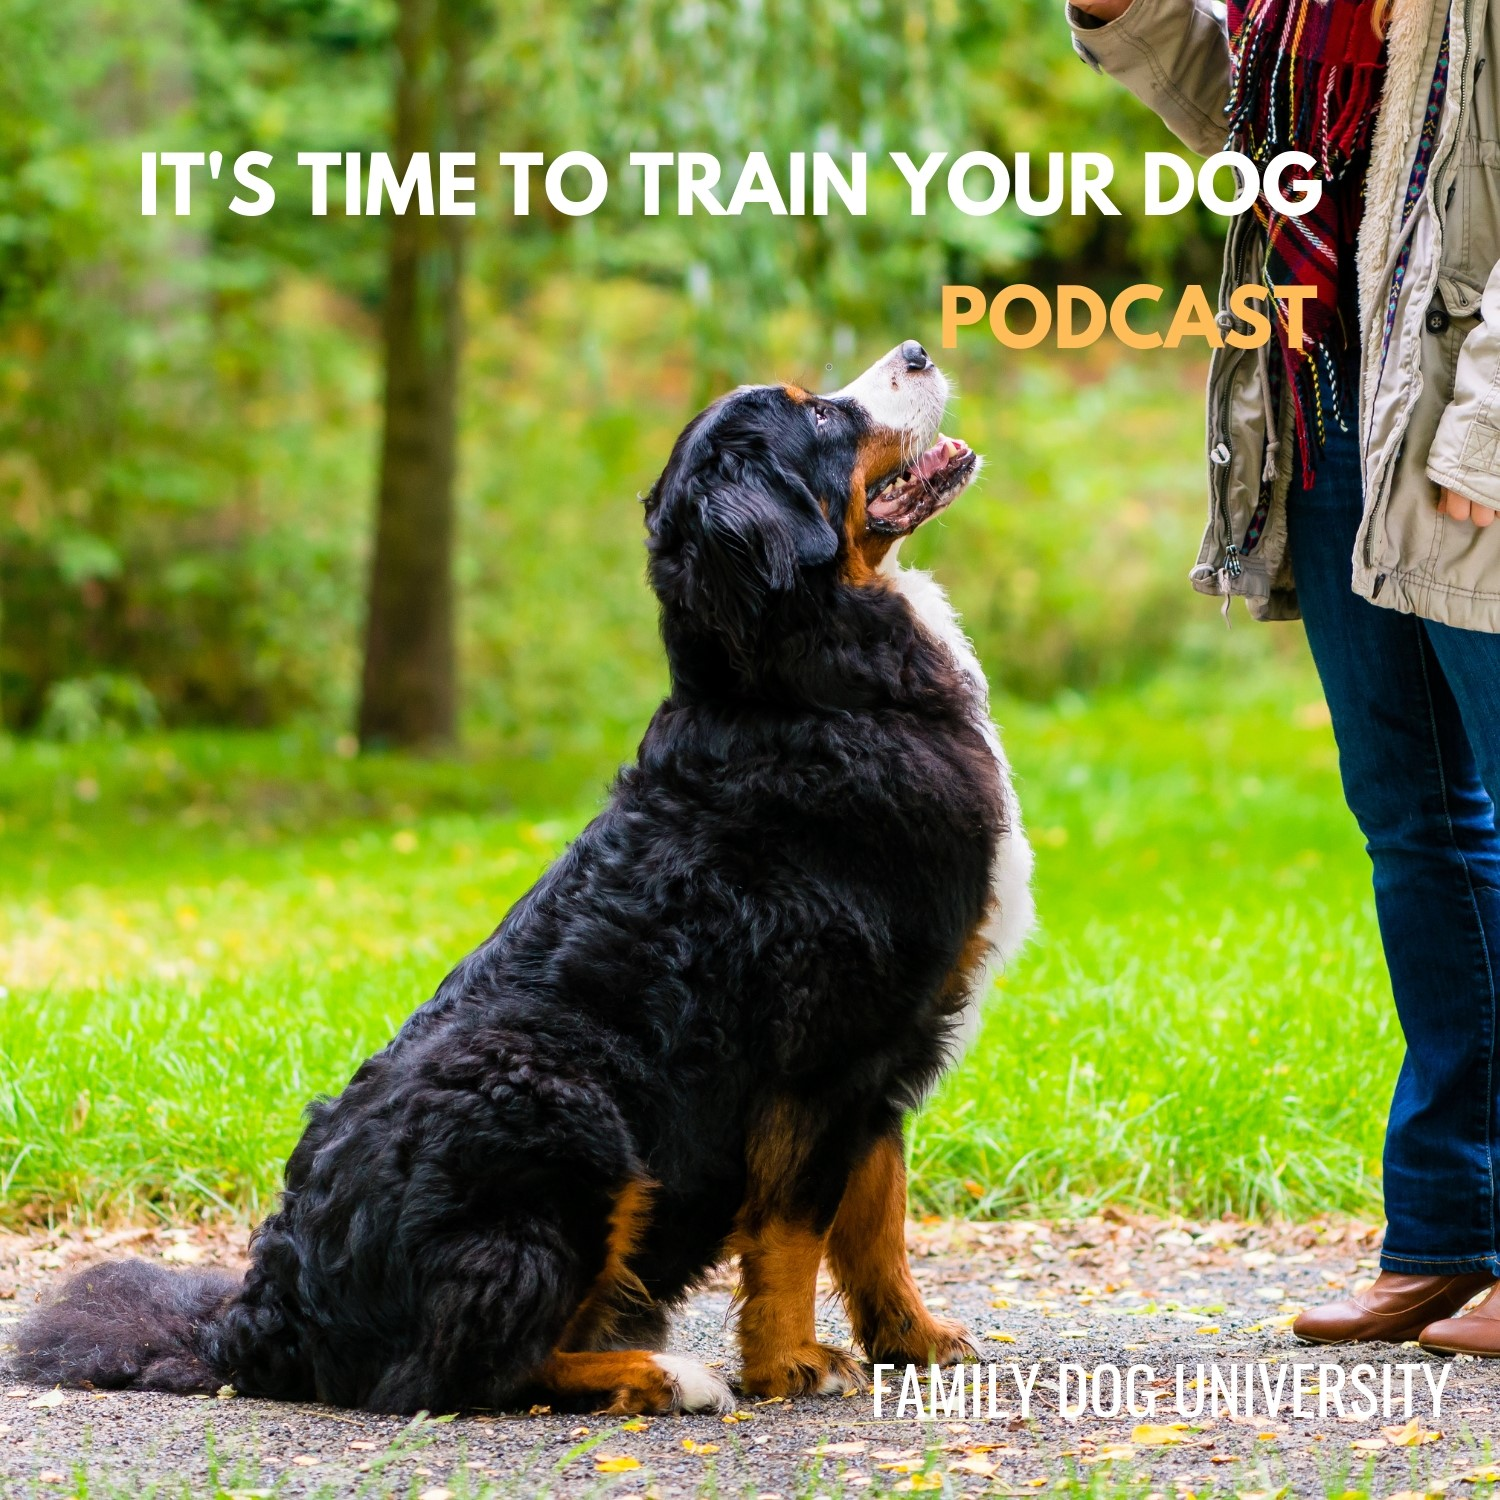 It's Time to Train Your Dog